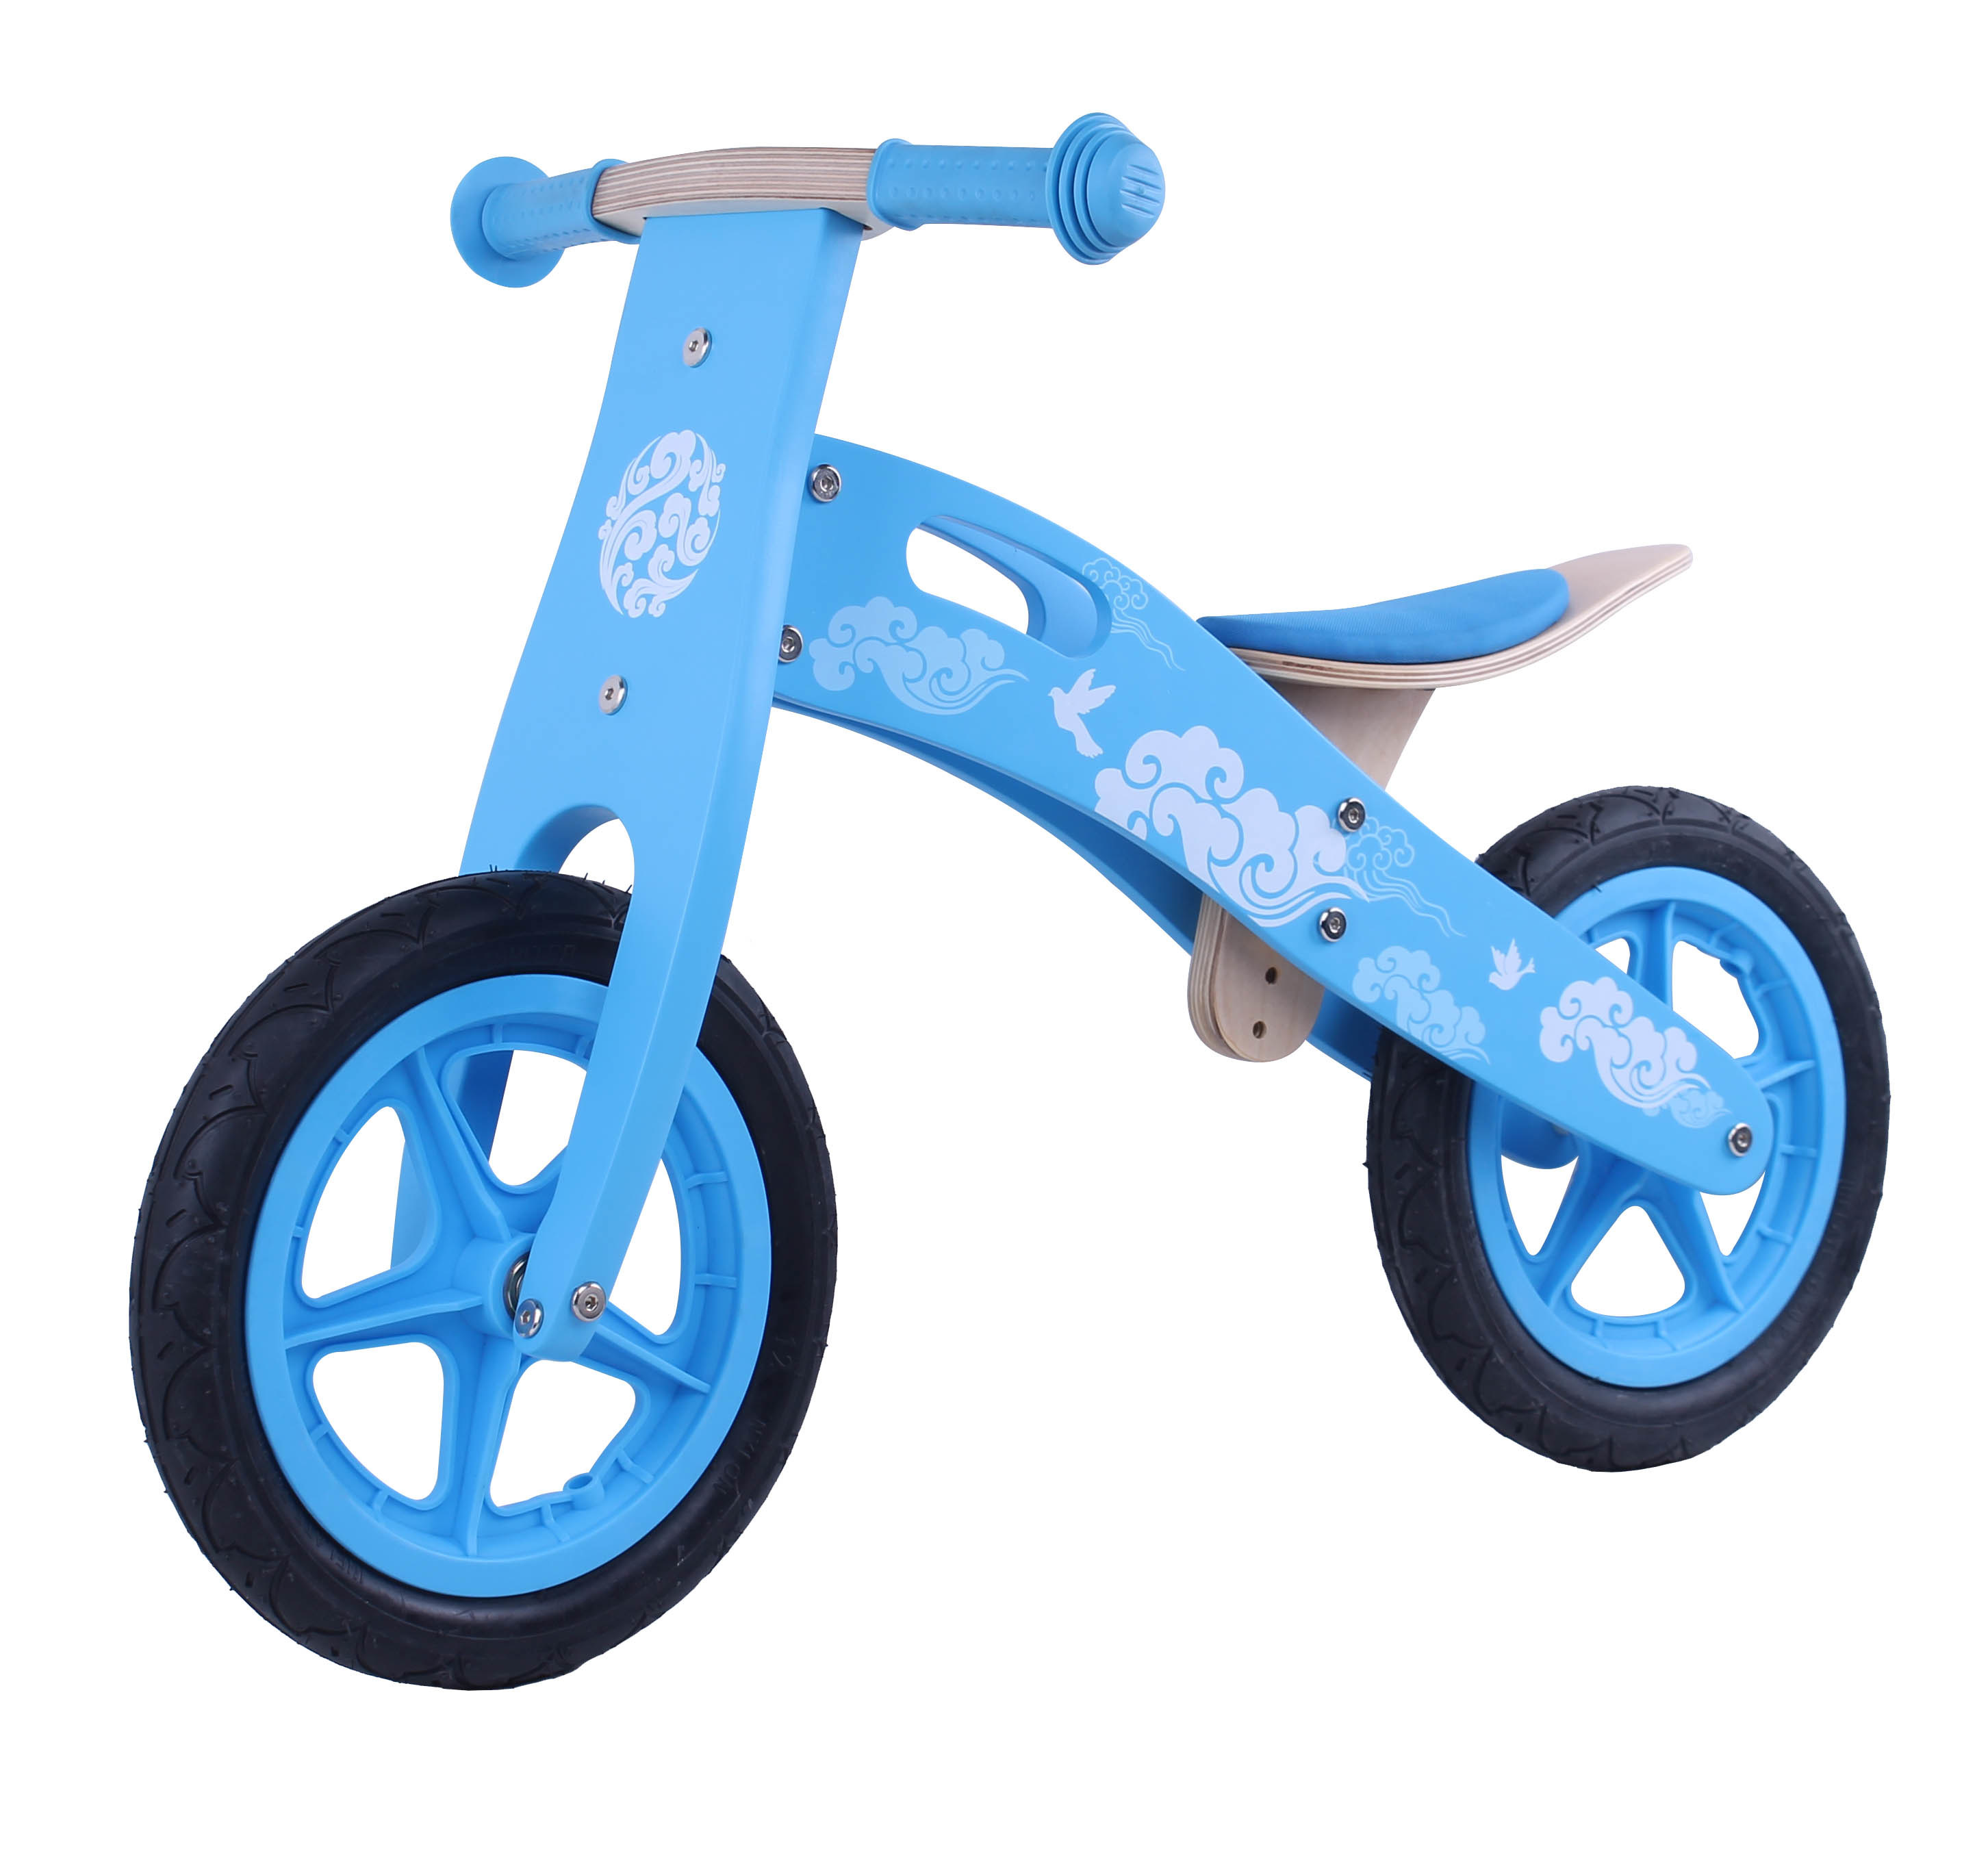 Hot Item 2017 Wholesale Wooden Balance Bikes For Toddlers High Quality Wooden Balance Bikes For Toddlers